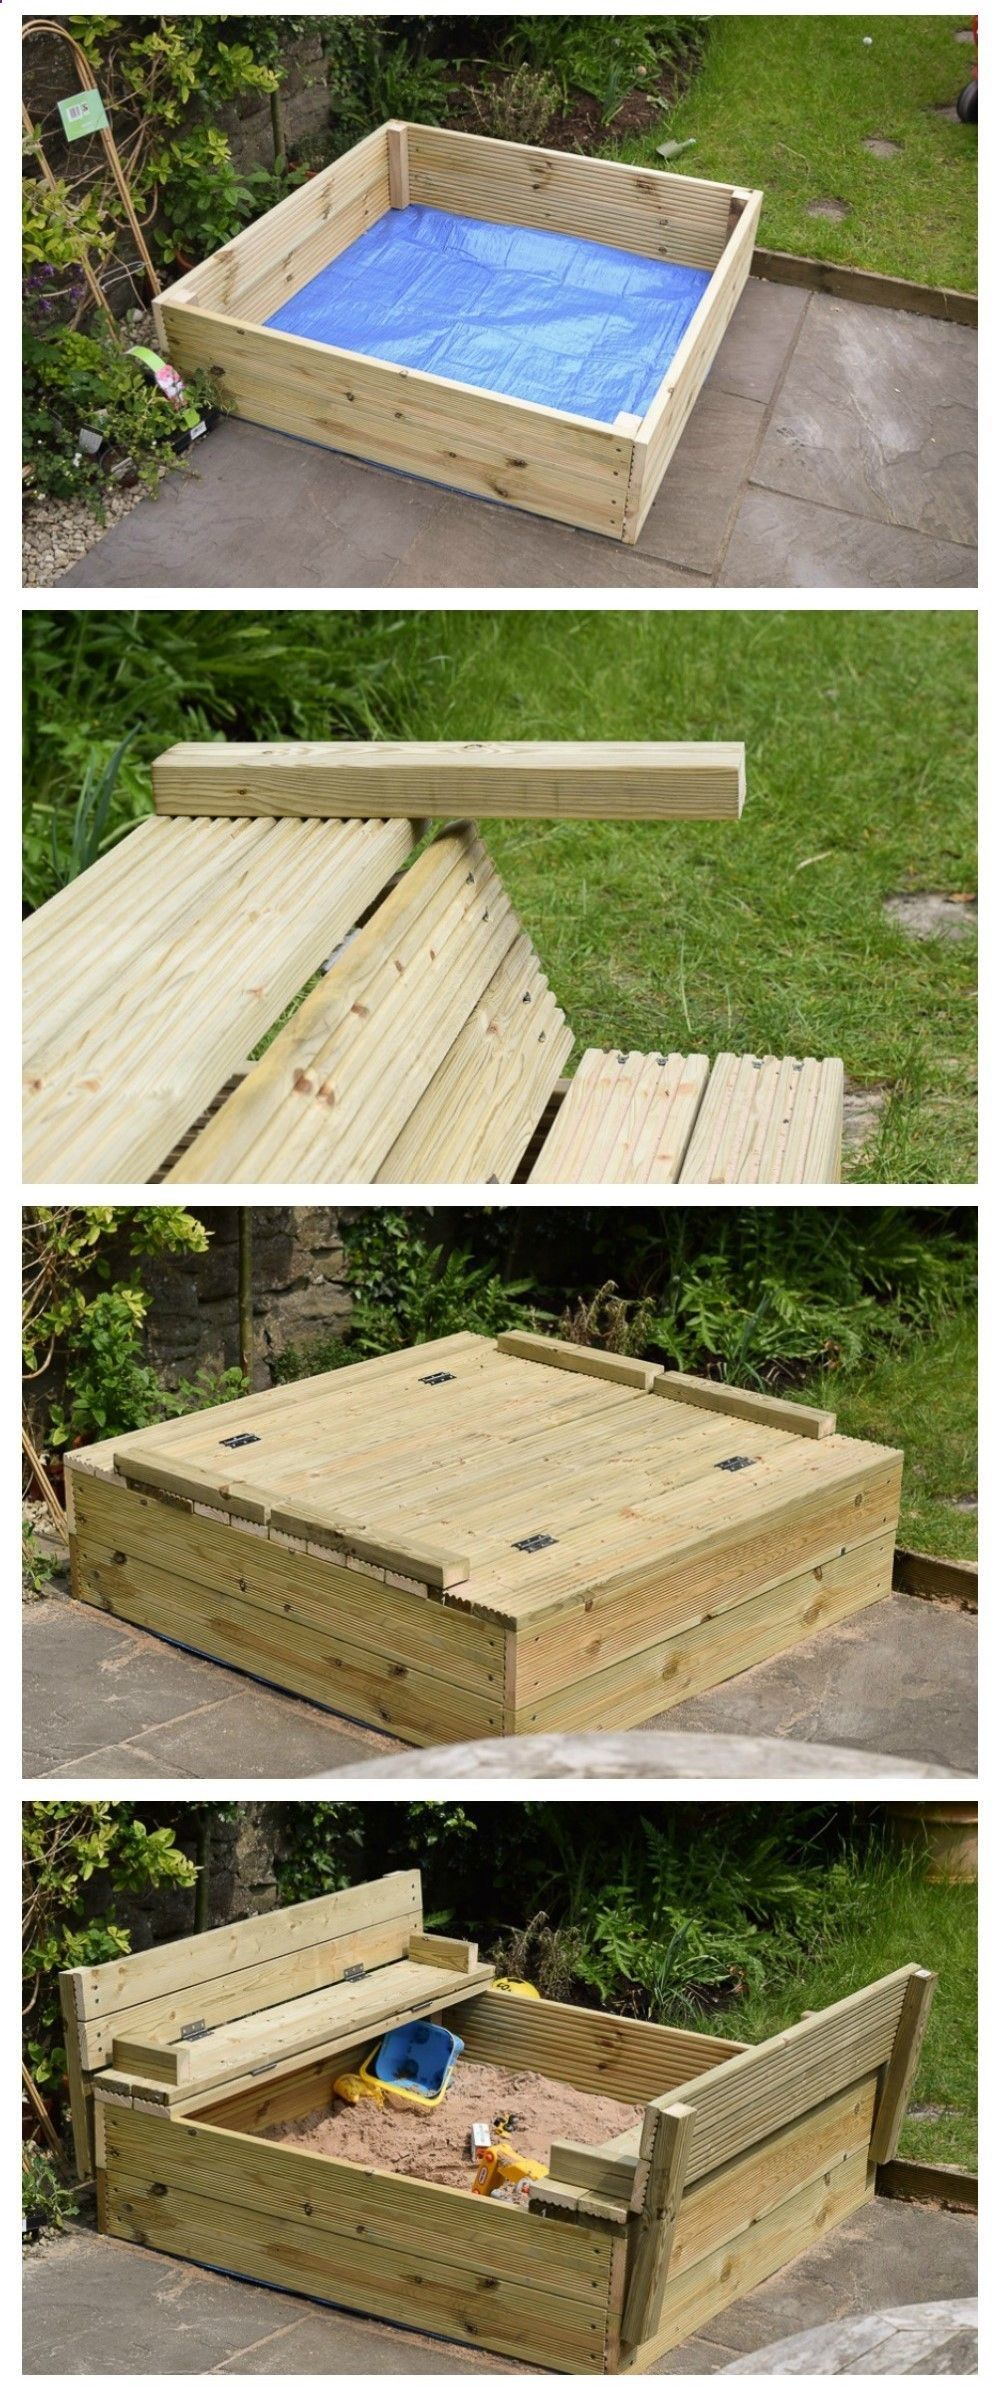 Plans Of Woodworking Diy Projects  Easy Diy Wooden Sandpit